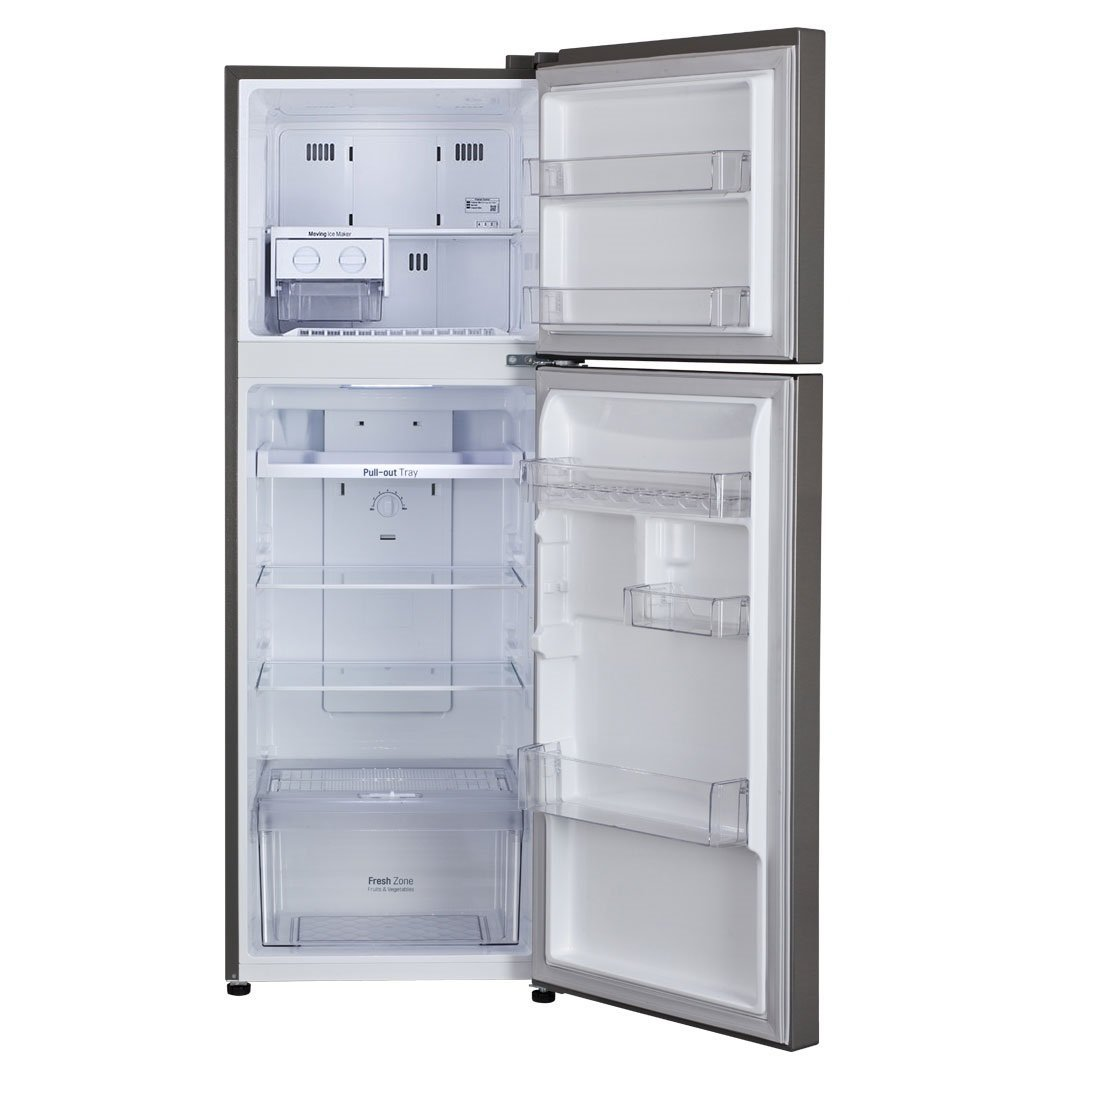 Trays in refrigerators worn out